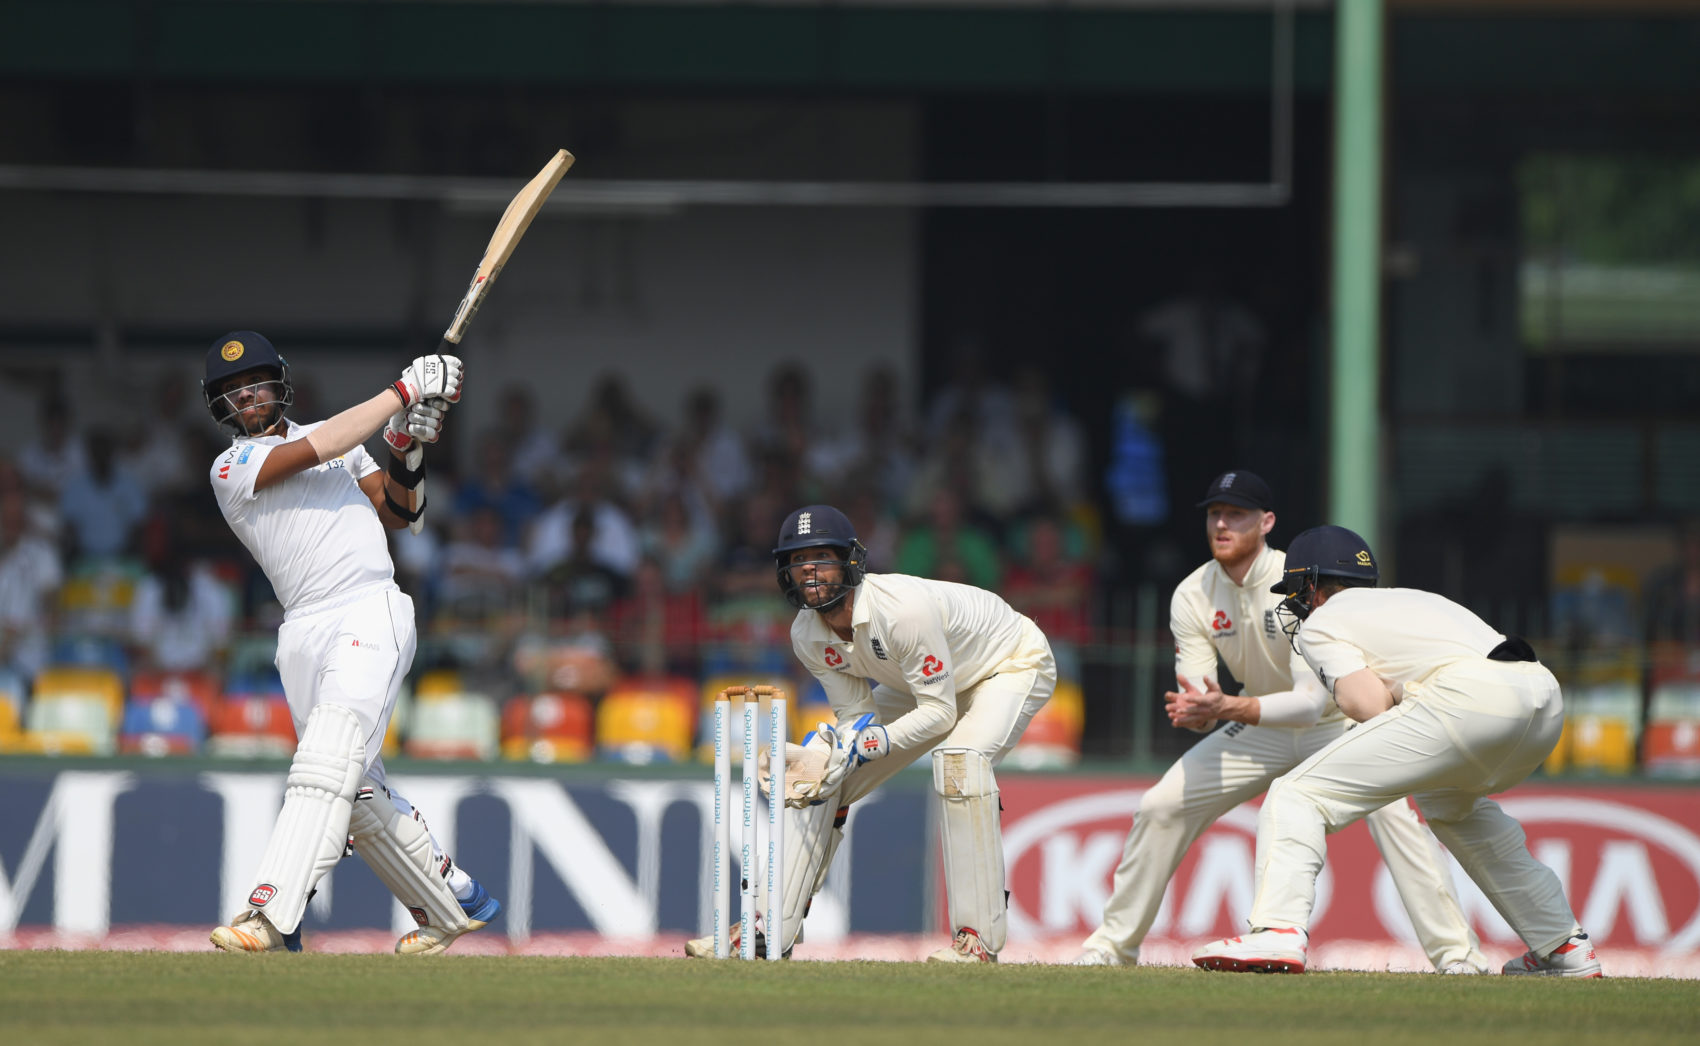 The Sri Lankan national cricket team bats against England at a match in Sri Lanka. (Stu Forster/Getty Images)